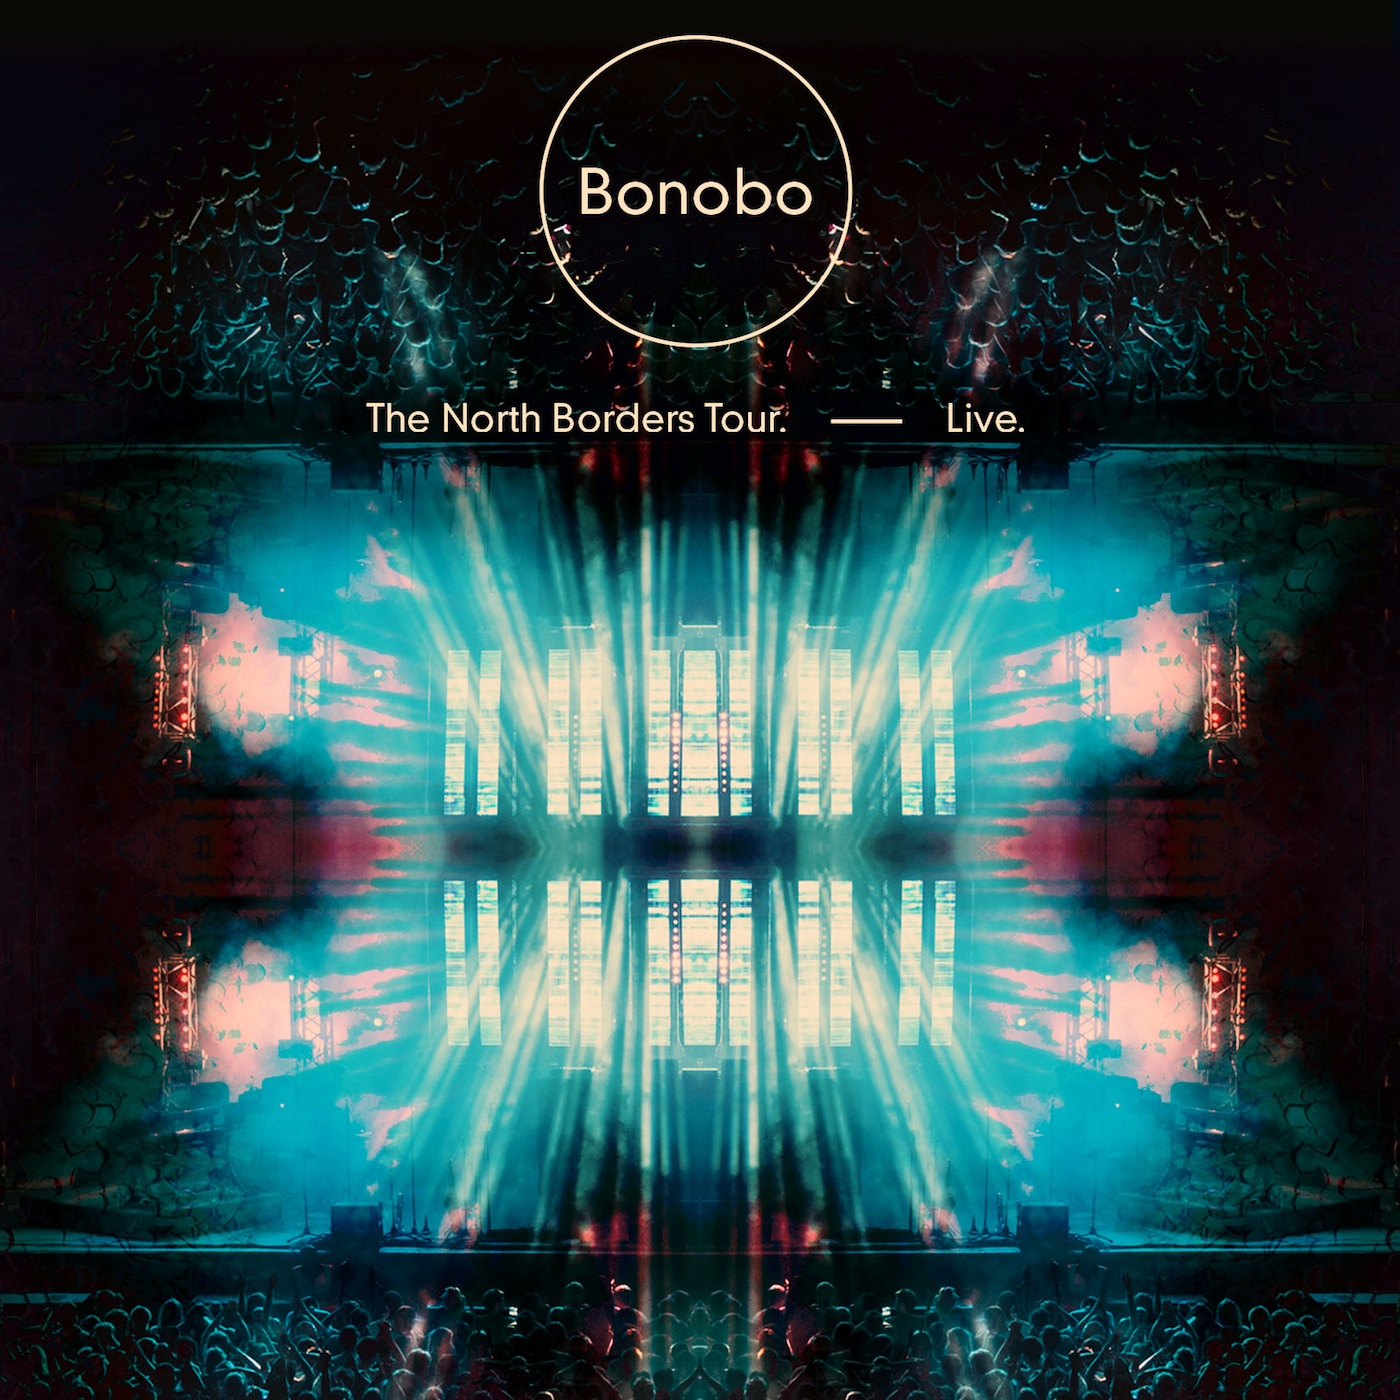 Bonobo - The North Borders Tour - Live. (Album Review incl Preview)